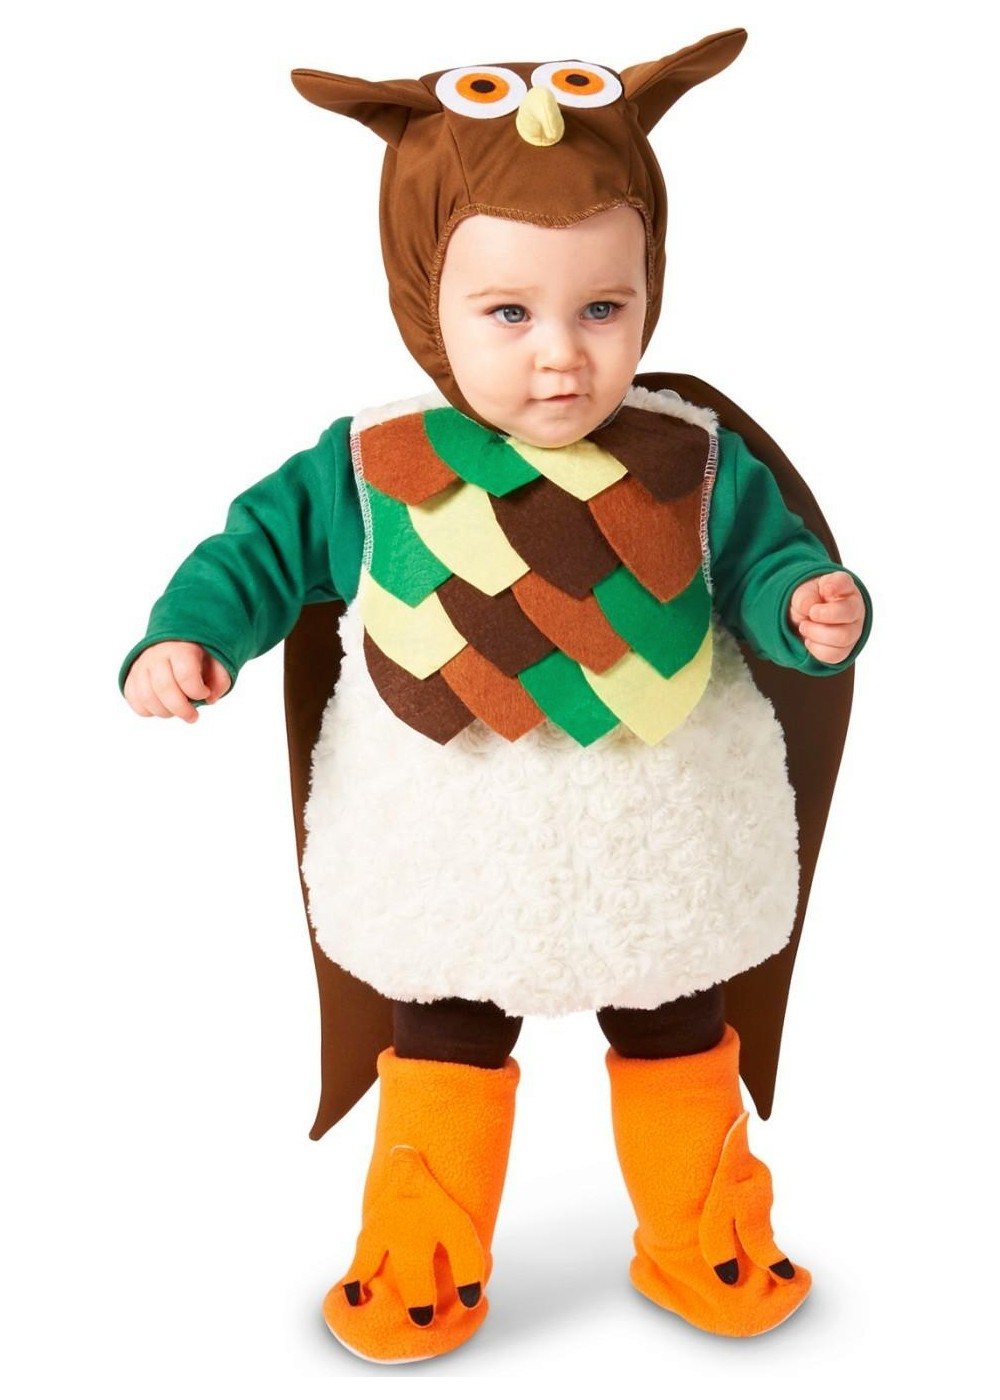 Flying Hoot Baby Boys Owl Costume  sc 1 st  Wonder Costumes & Flying Hoot Baby Boys Owl Costume - Animal Costumes - New for 2018